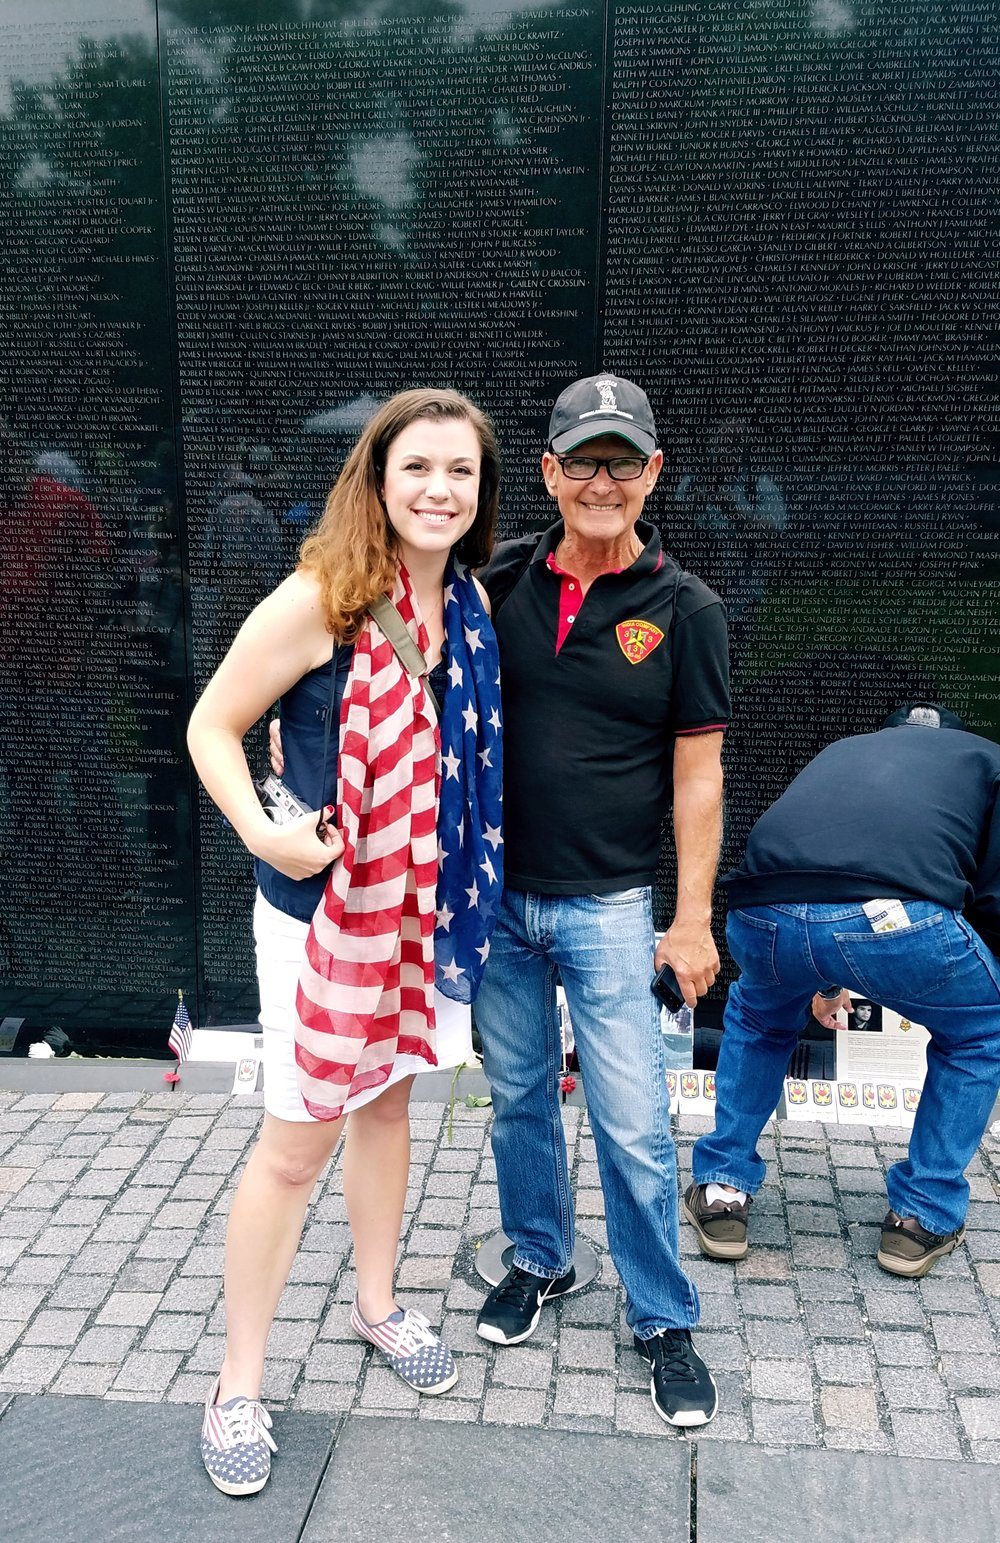 Mr. Stevenson, a veteran of the 3rd Marine Division was in town paying respects to the fallen at the Wall.